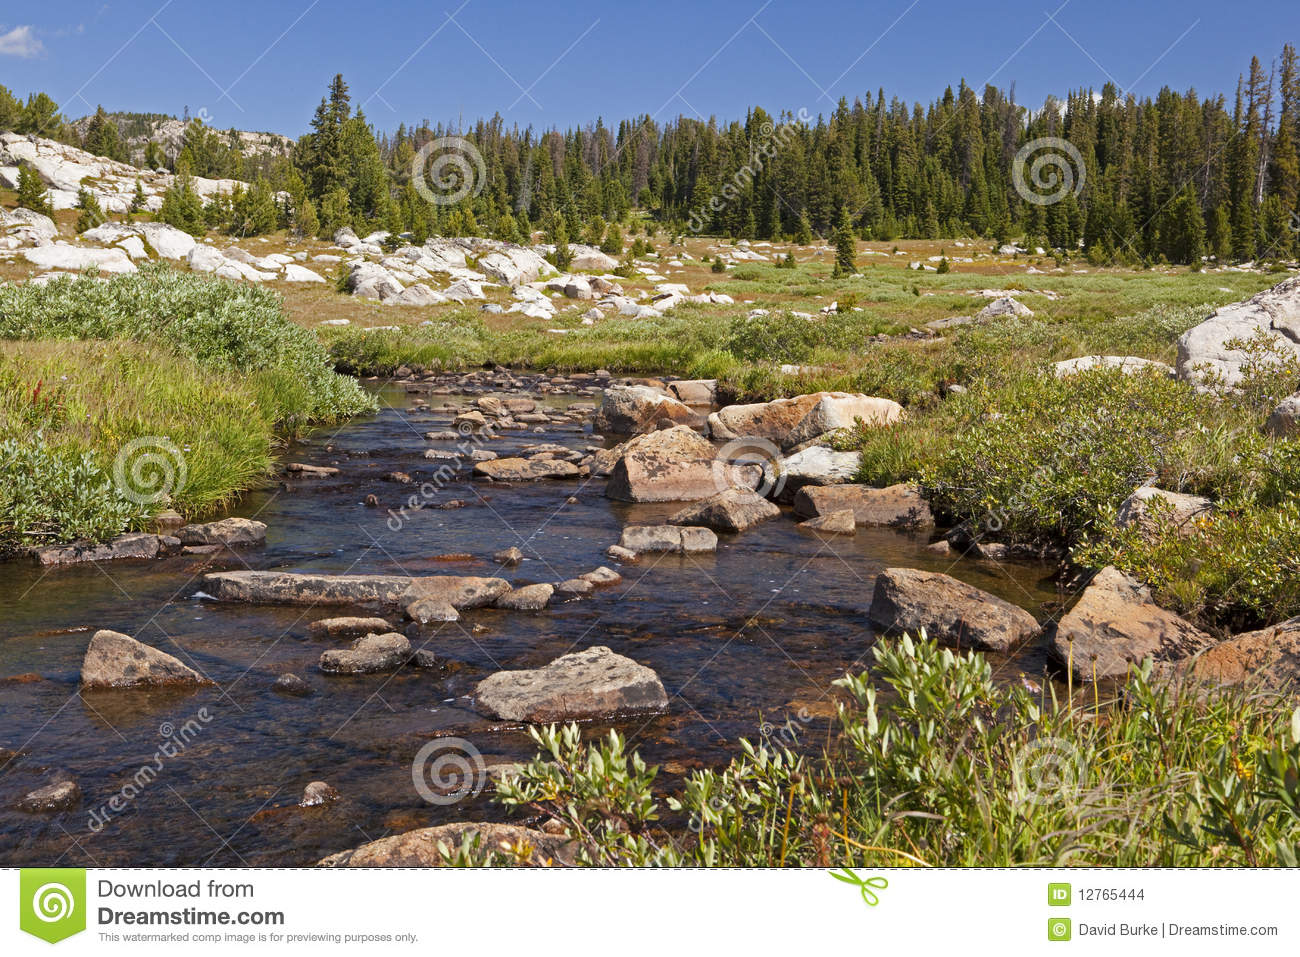 Beartooth mountains alpine fishing stream stock images for Fish and stream